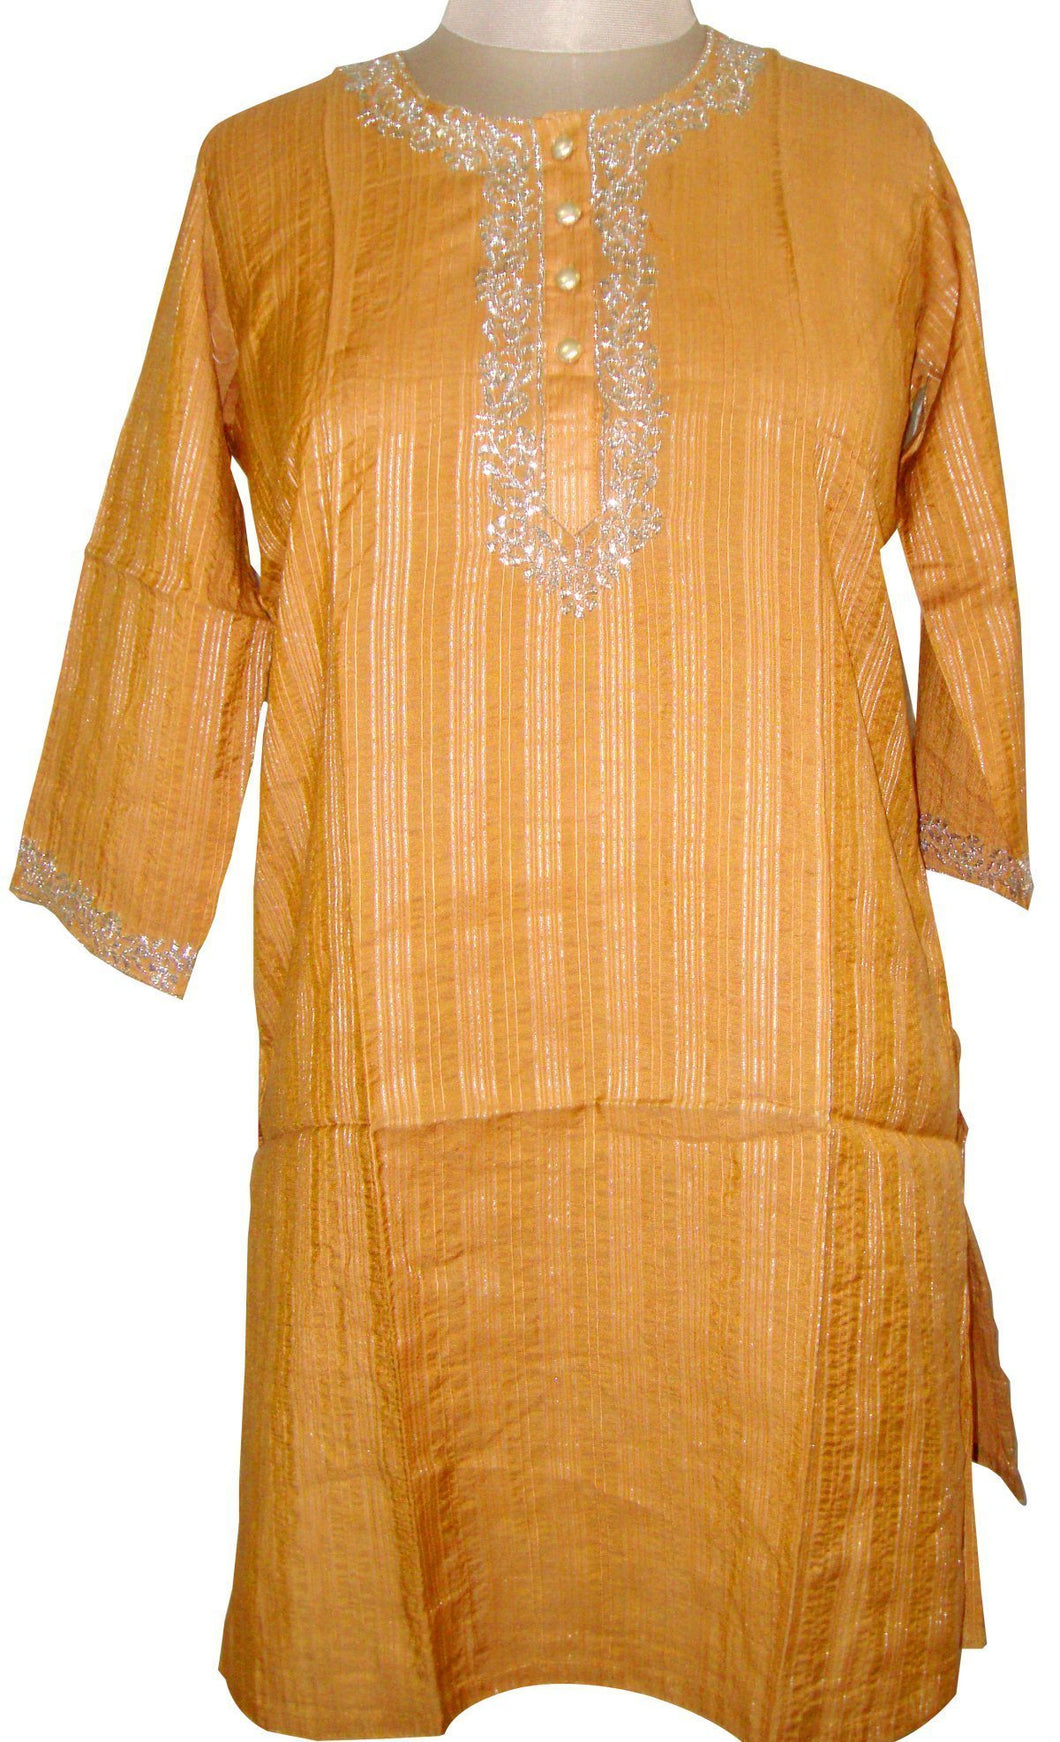 Brown Cotton Stitched Kurta Dress Size 44 SC522 - Ethnic's By Anvi Creations